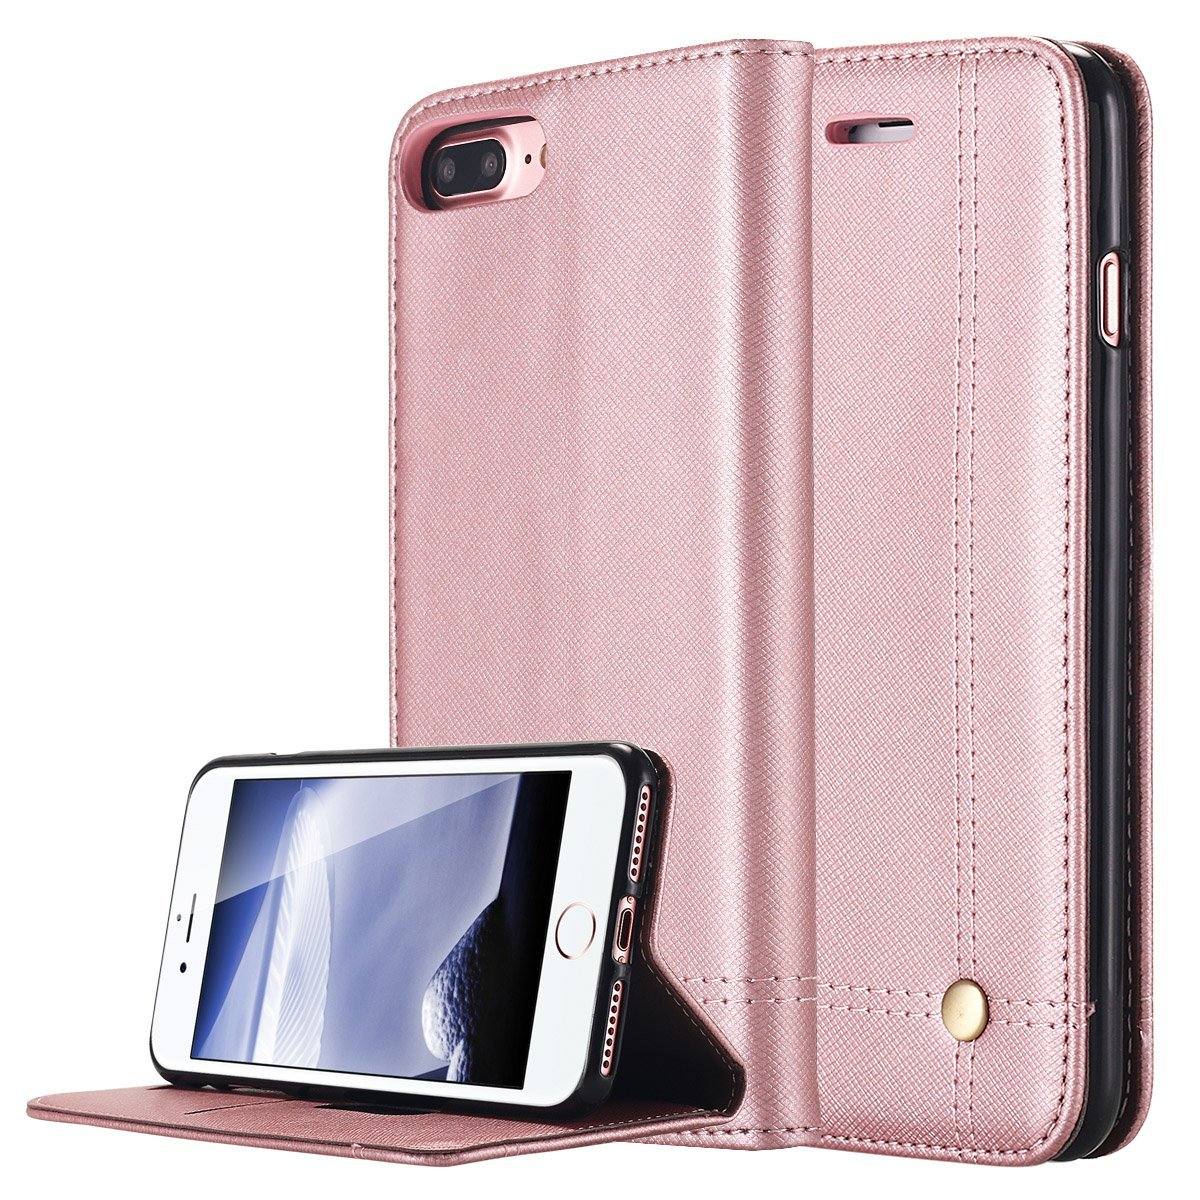 iPhone 7 Plus Case, LONTECT Slim Folio Flip PU Leather Stand Cover Wallet Case with Card slots Magnetic Closure for Apple iPhone 7 Plus - Rose Gold